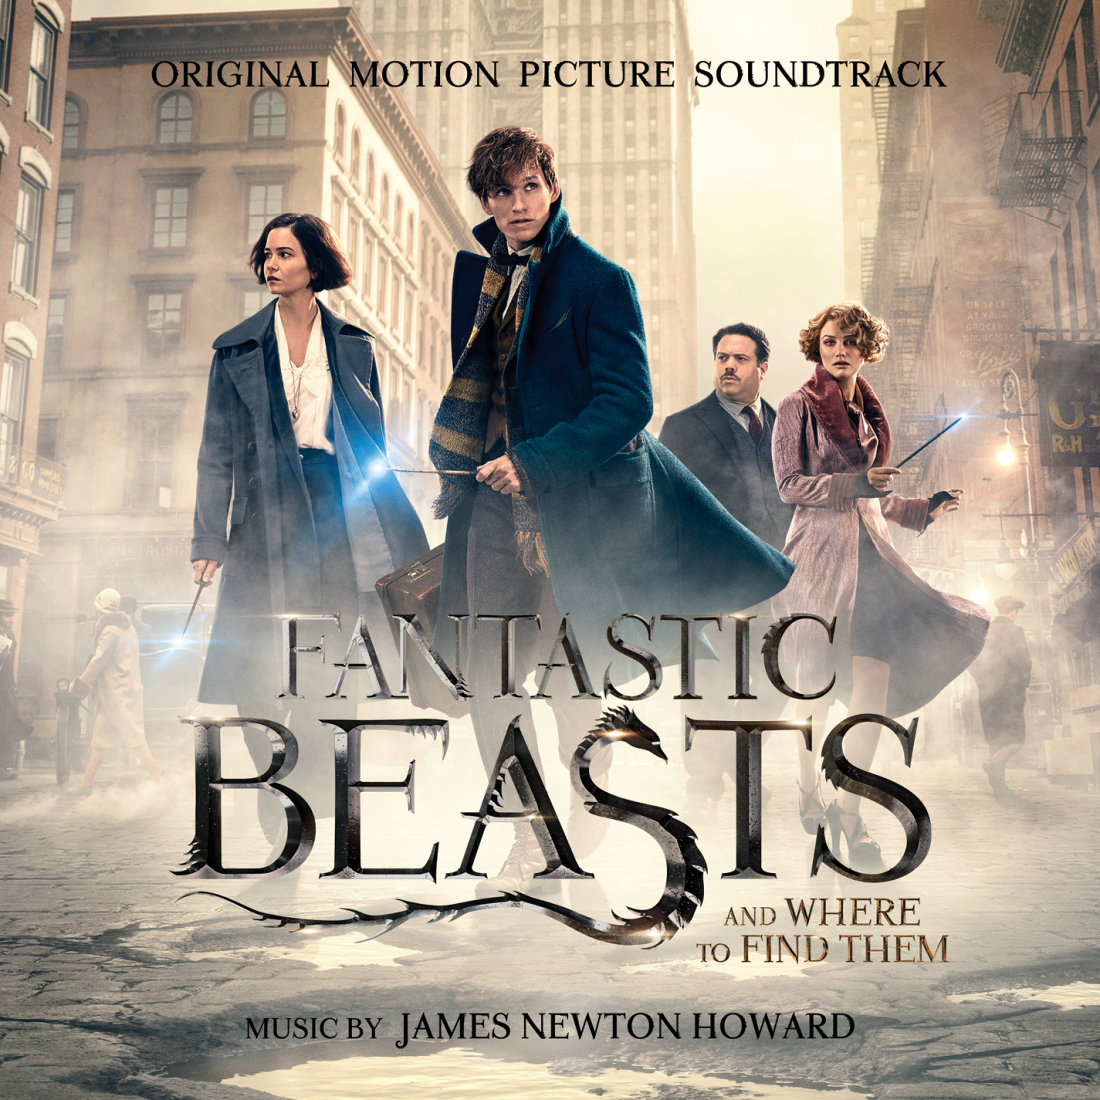 fantastic beasts and where to find them 2 free download